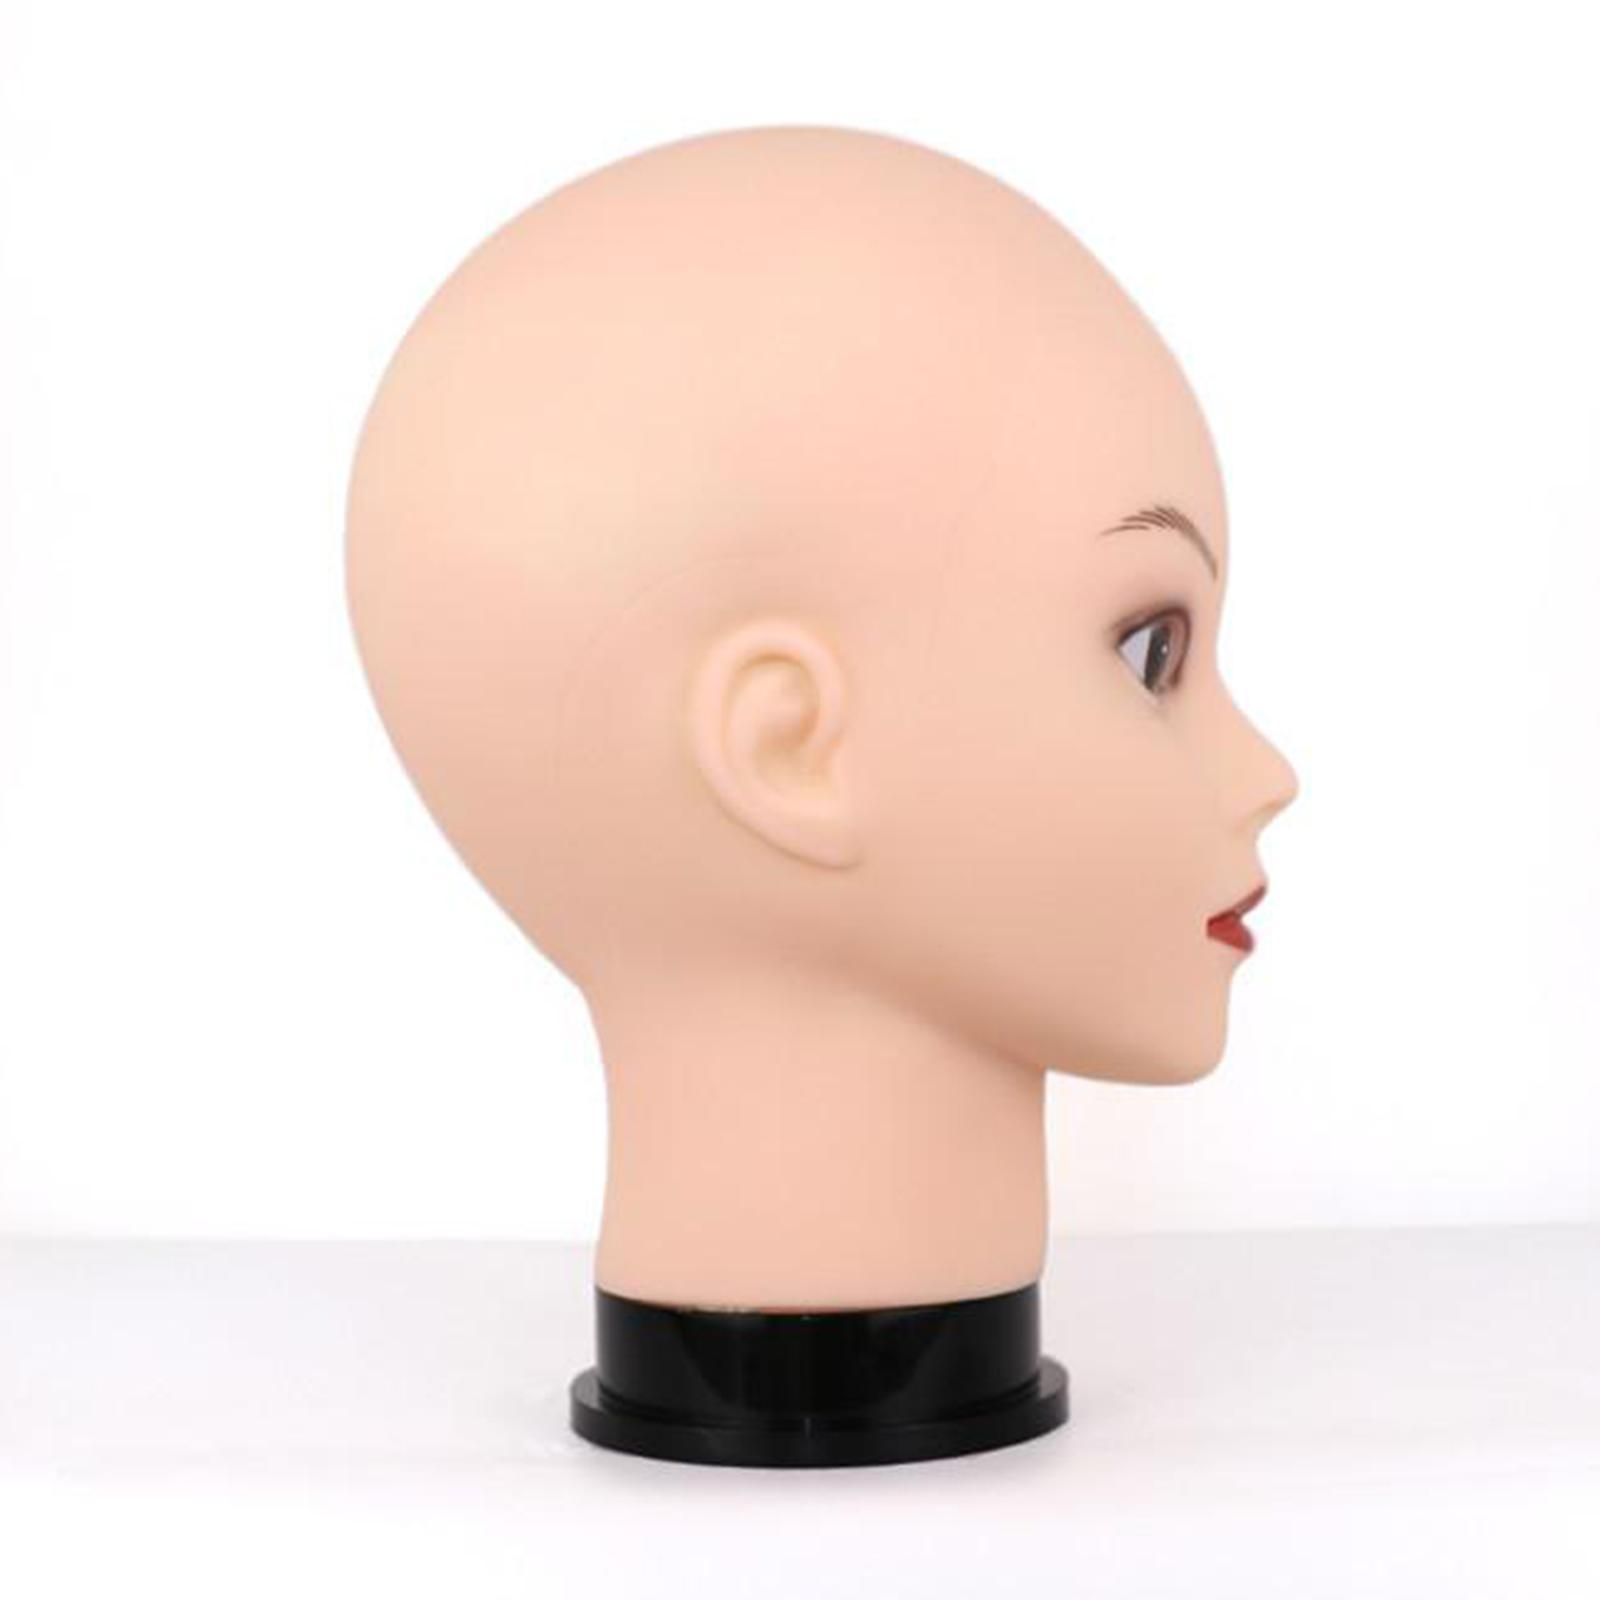 thumbnail 4 - Male-female bald mannequin head wigs hats glasses scarves jewelry